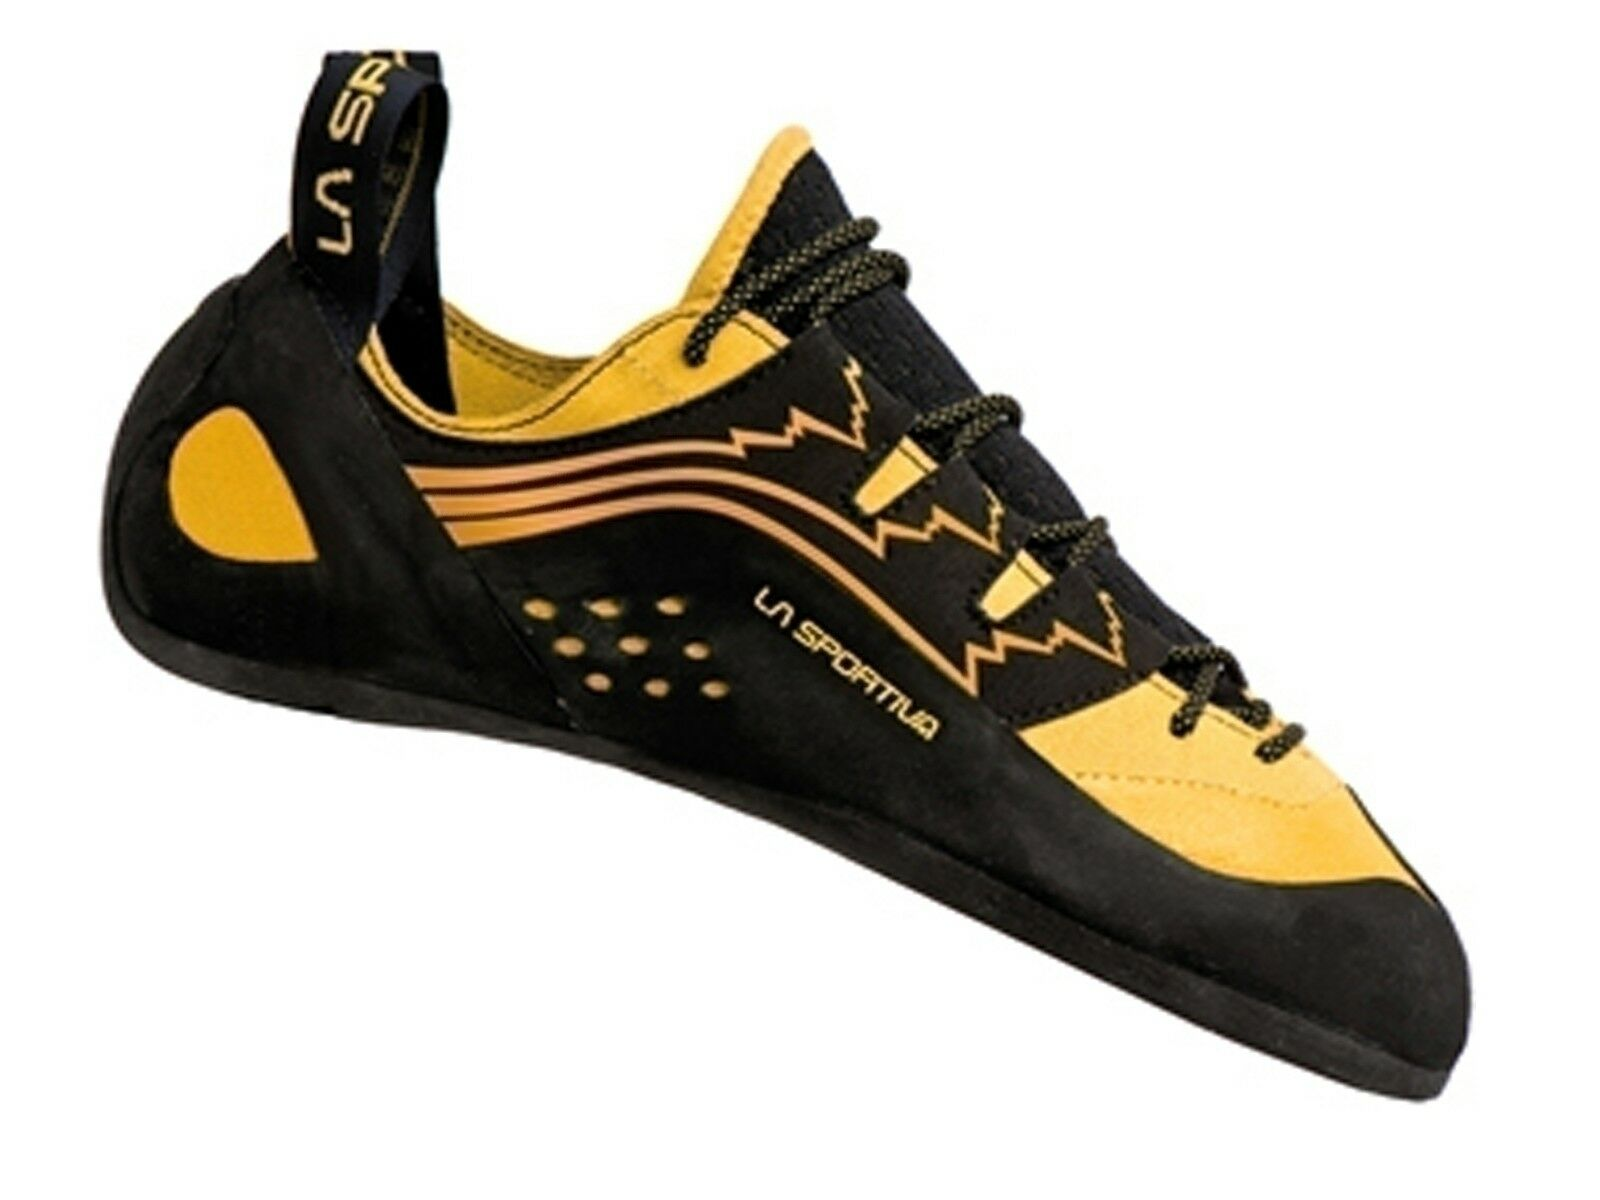 shoes ARRAMPICATA men LA SPORTIVA  800  KATANA LACES black yellow